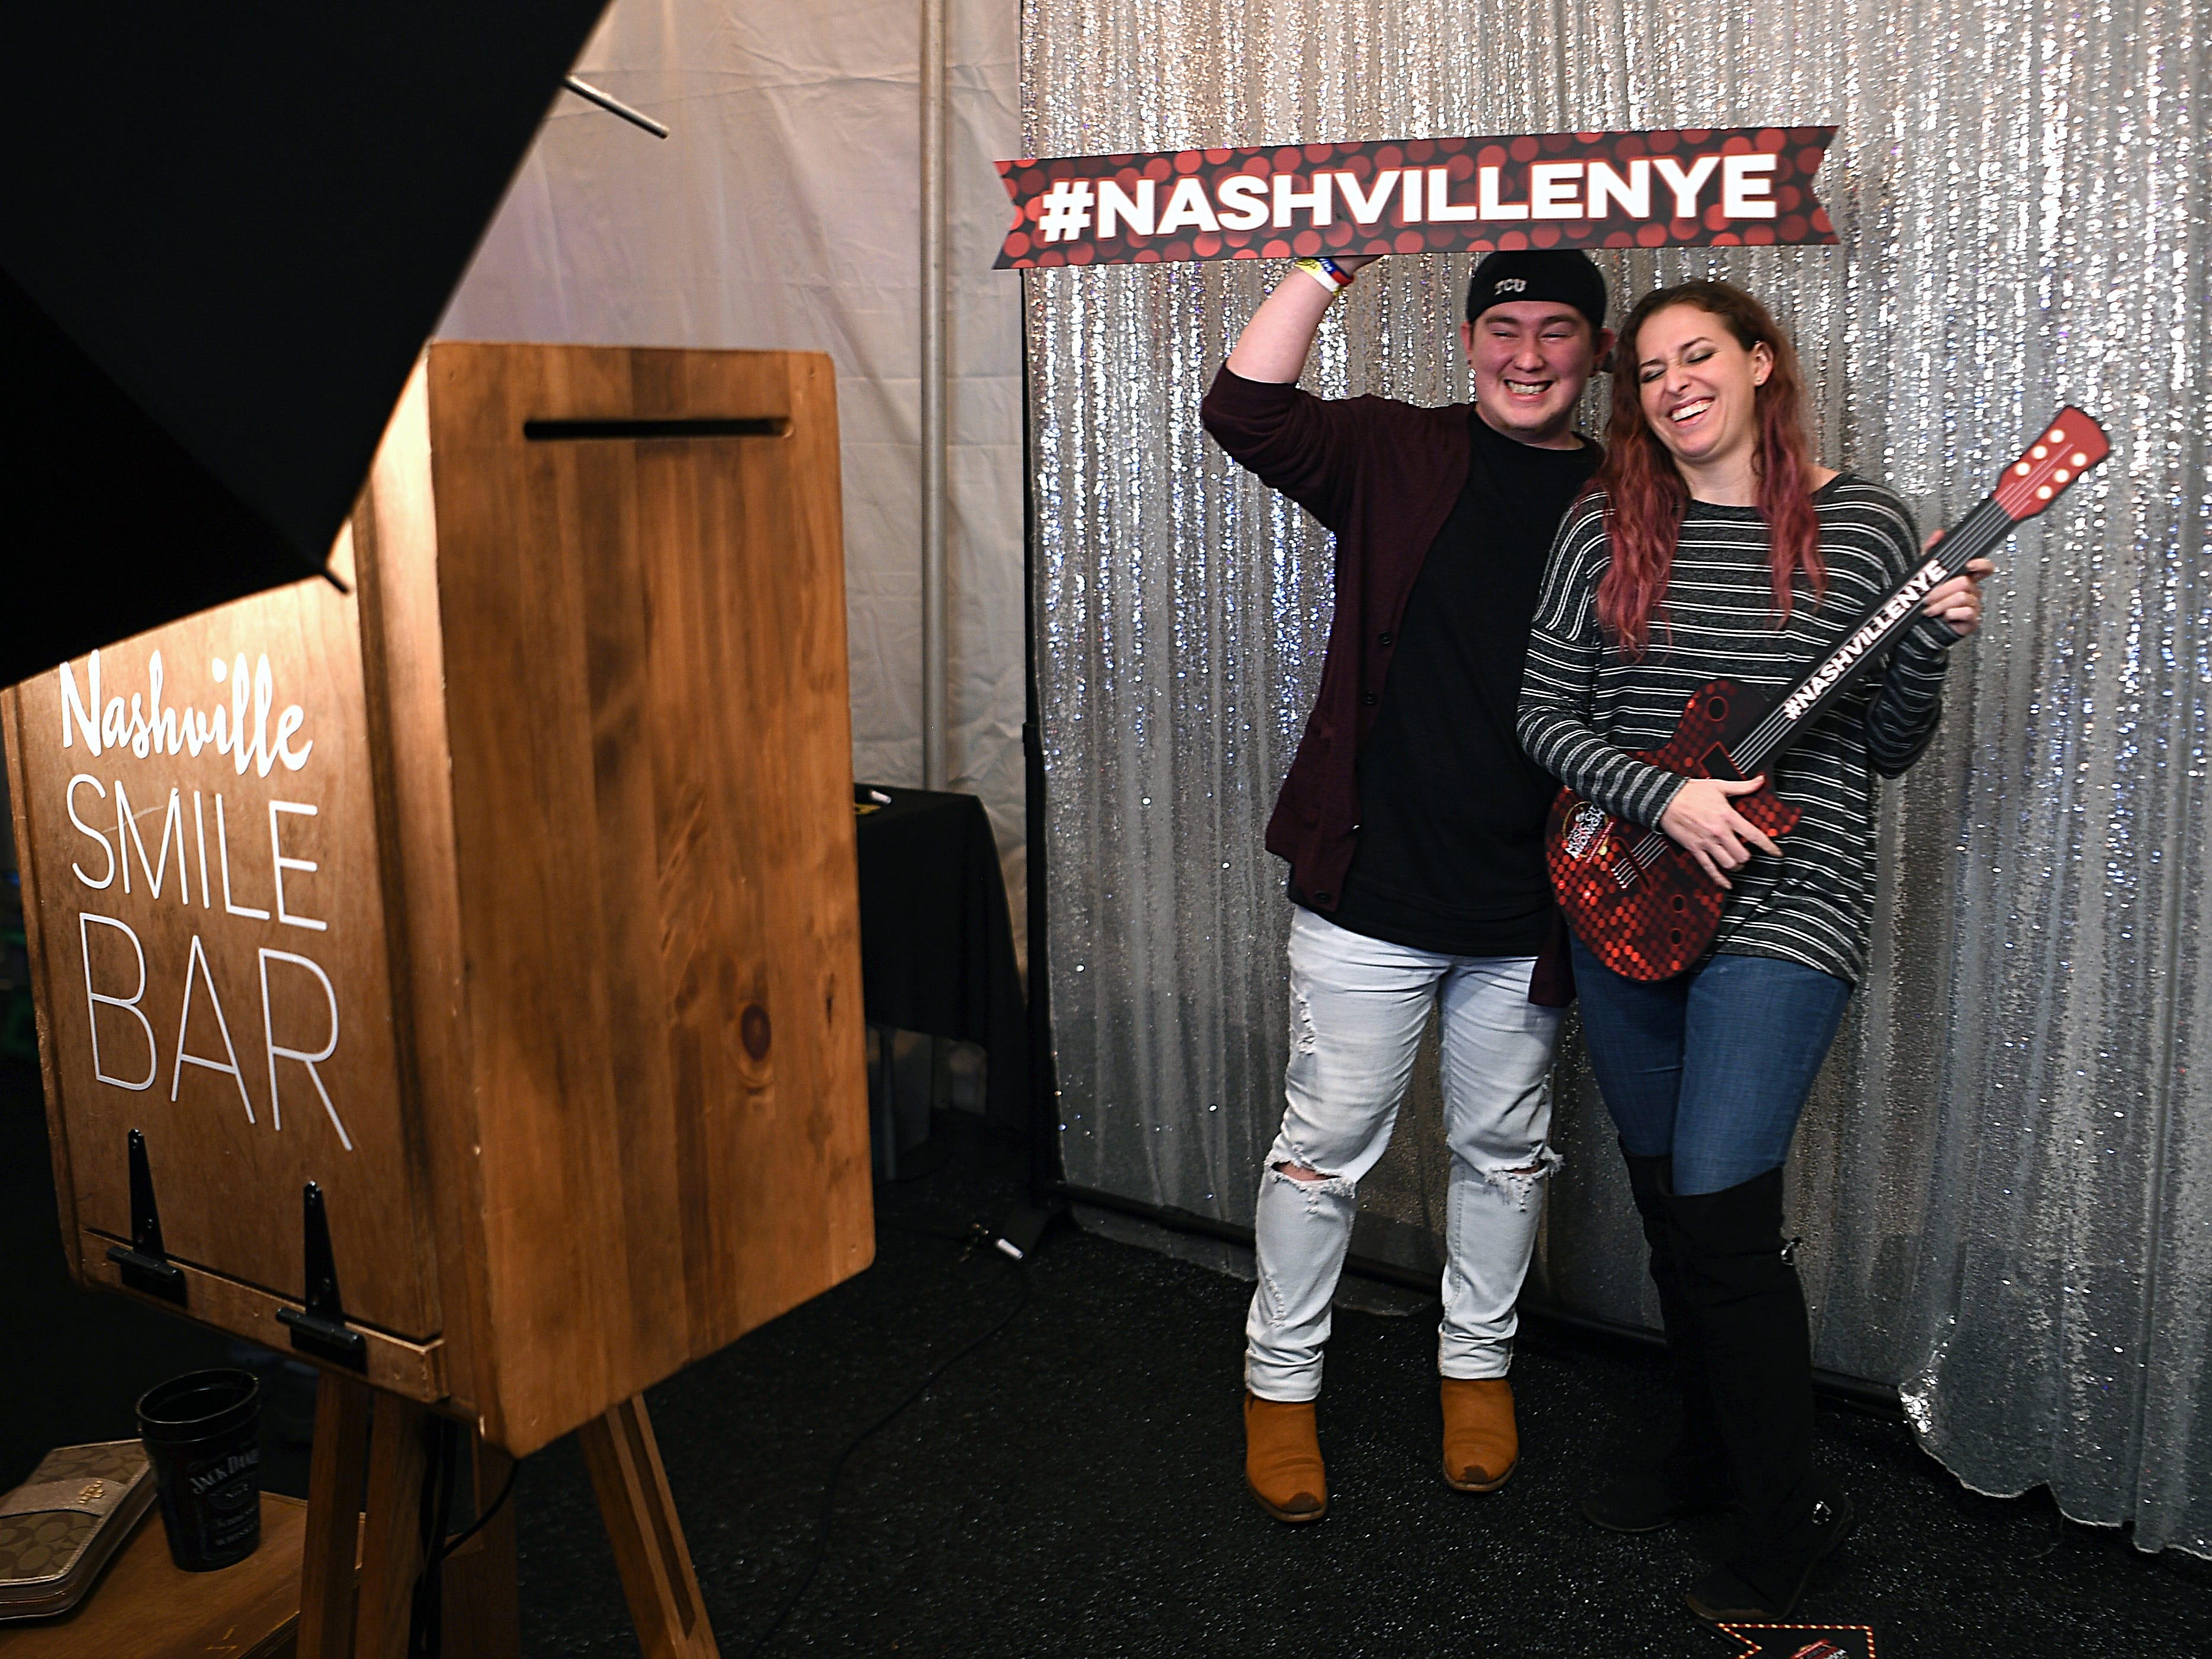 Rual Marez and Haylee Taueau of Dallas pose in the Nashville Smile Bar at the Jack Daniel's Music City Midnight: New Year's Eve at  Bicentennial Capitol Mall State Park in Nashville on Monday, Dec. 31, 2018.